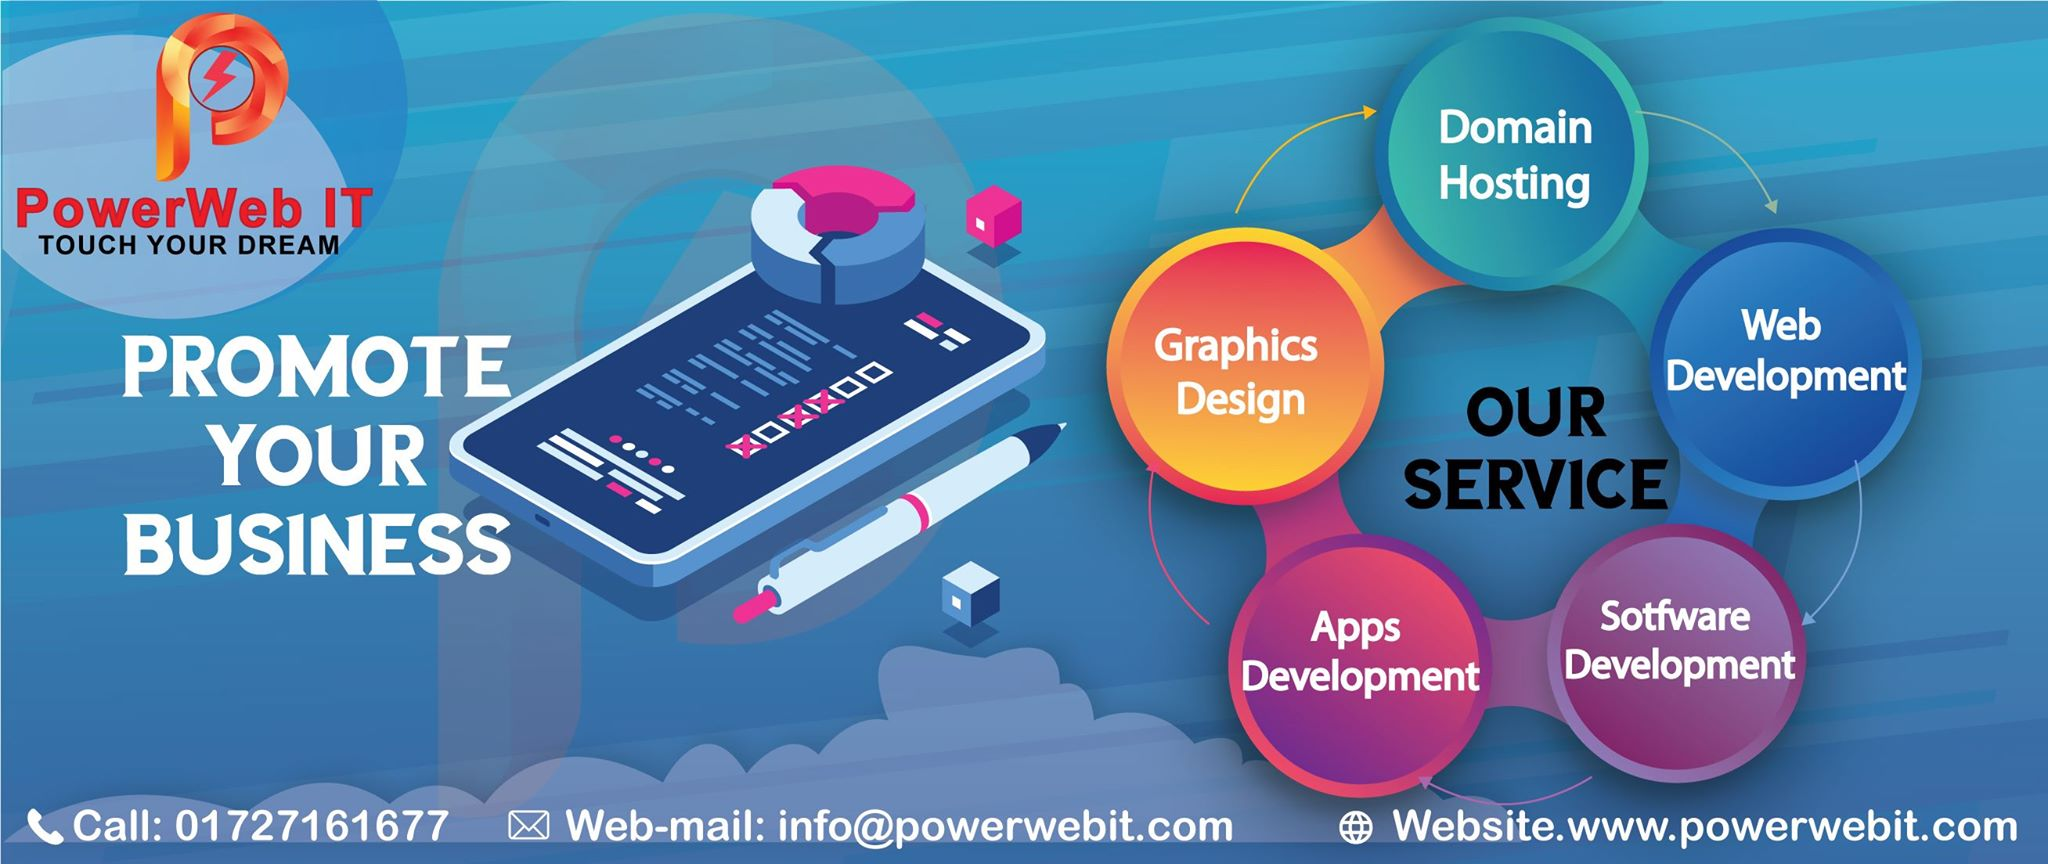 professional web design and development online course powerwebit